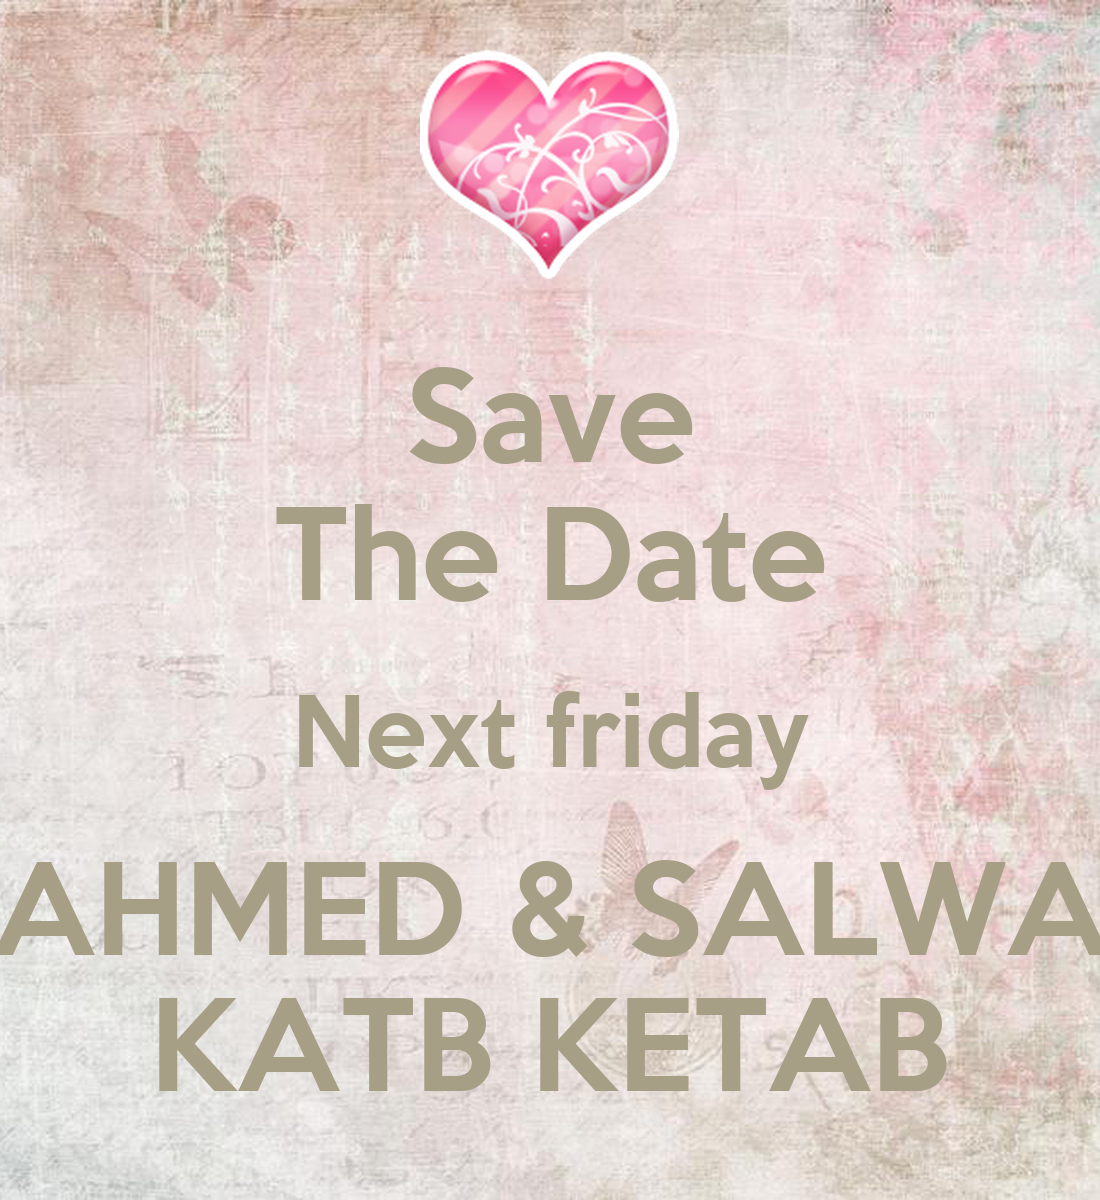 Next friday date